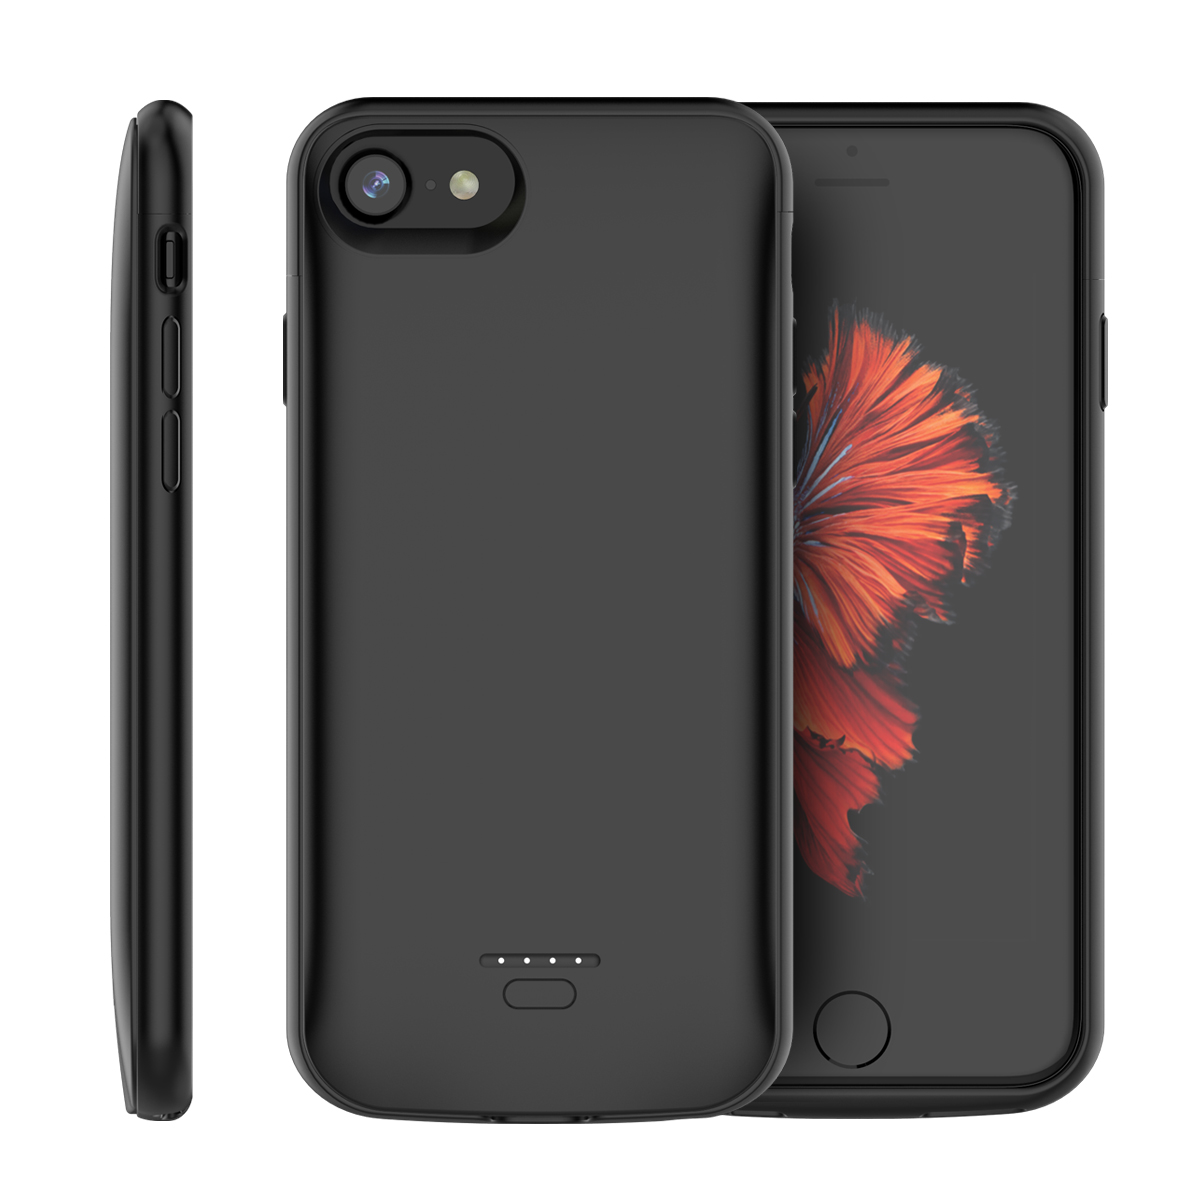 For <font><b>iPhone</b></font> 7 8 5 SE <font><b>5S</b></font> <font><b>Battery</b></font> Charger <font><b>Case</b></font> 4000mAh Backup Power Bank Charging Cover For <font><b>iPhone</b></font> X 6 6s 11 Pro Max <font><b>Battery</b></font> <font><b>Case</b></font> image